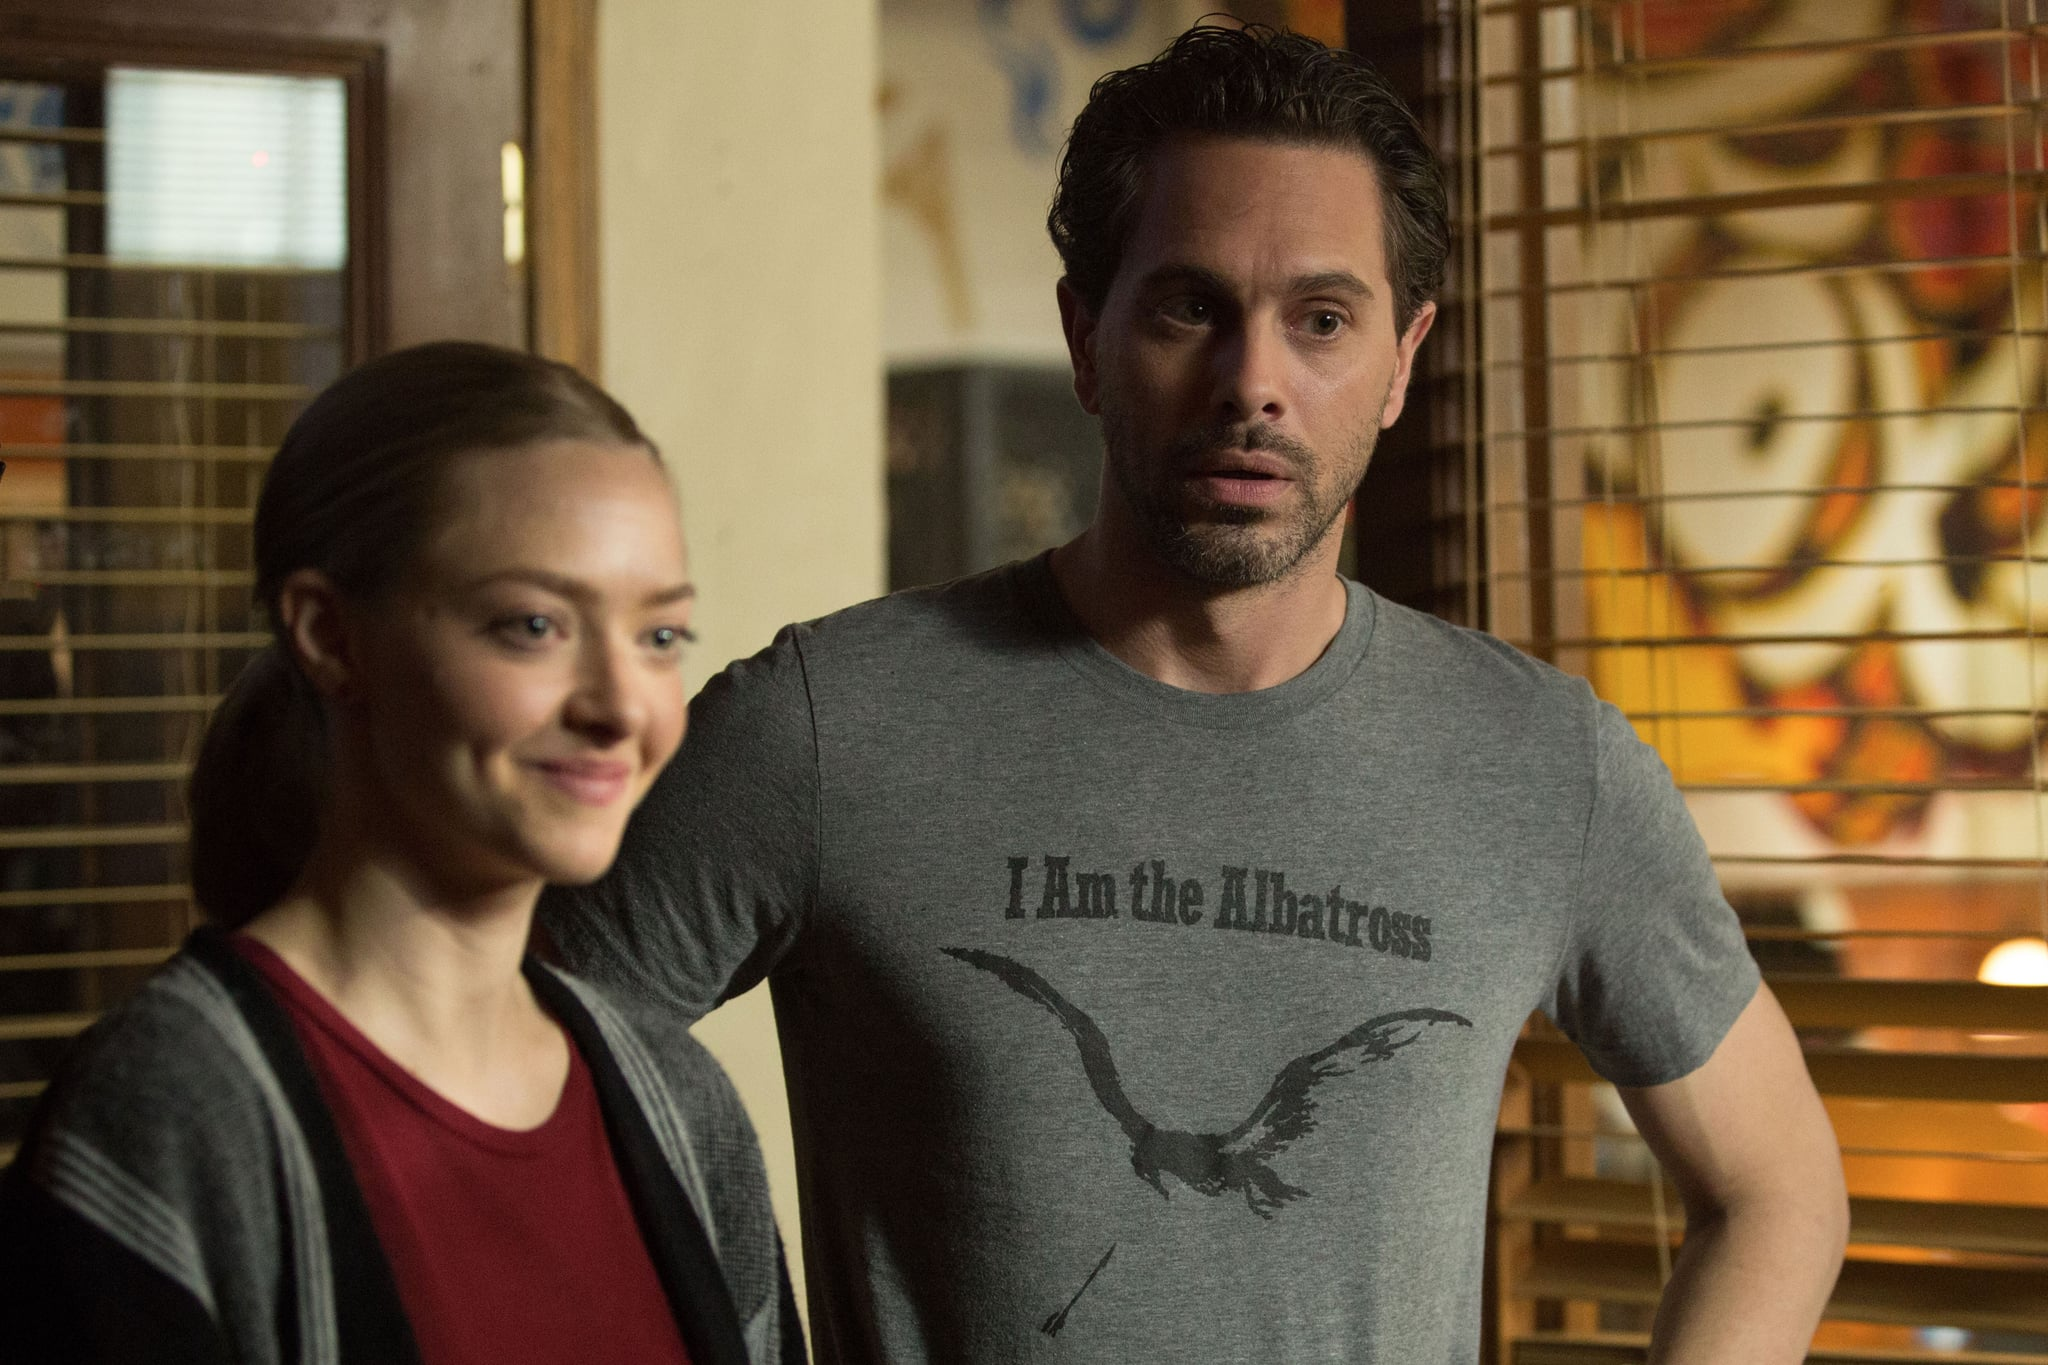 THE LAST WORD, from left: Amanda Seyfried, Thomas Sadoski, 2017.  Bleecker Street Media /Courtesy Everett Collection